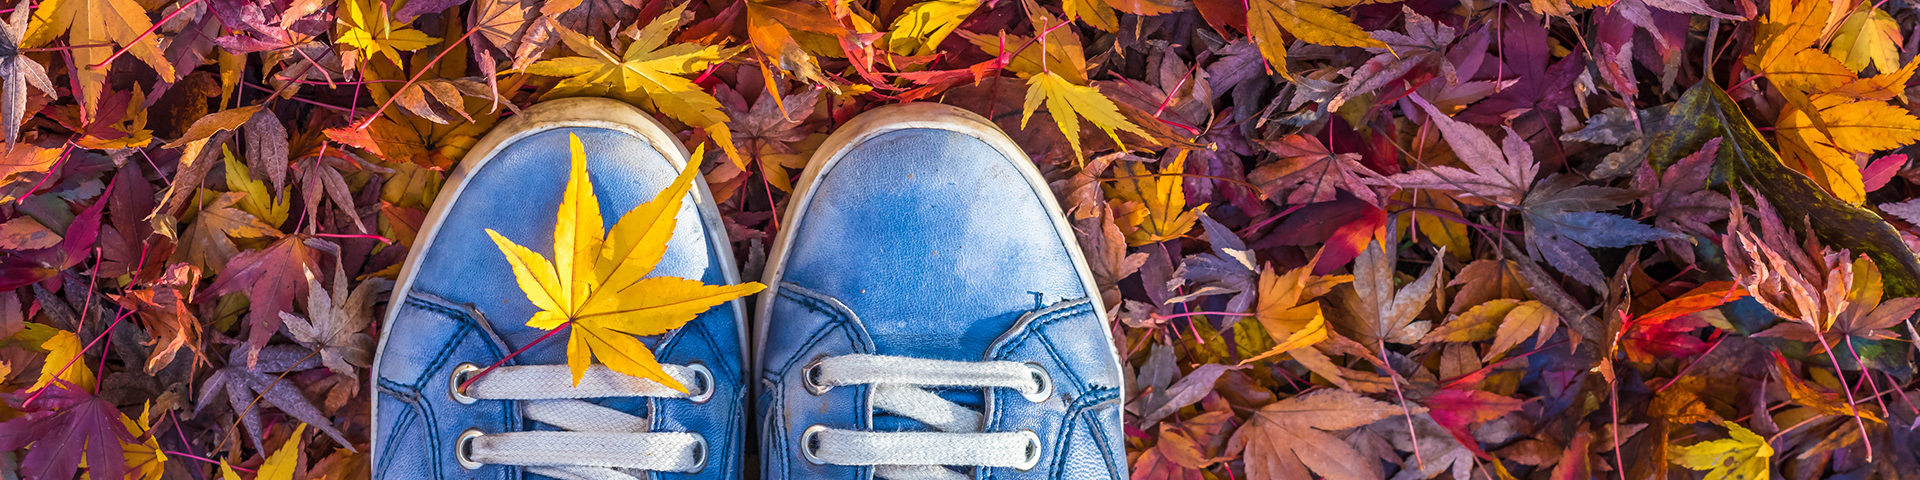 Autumn leaves and blue shoes